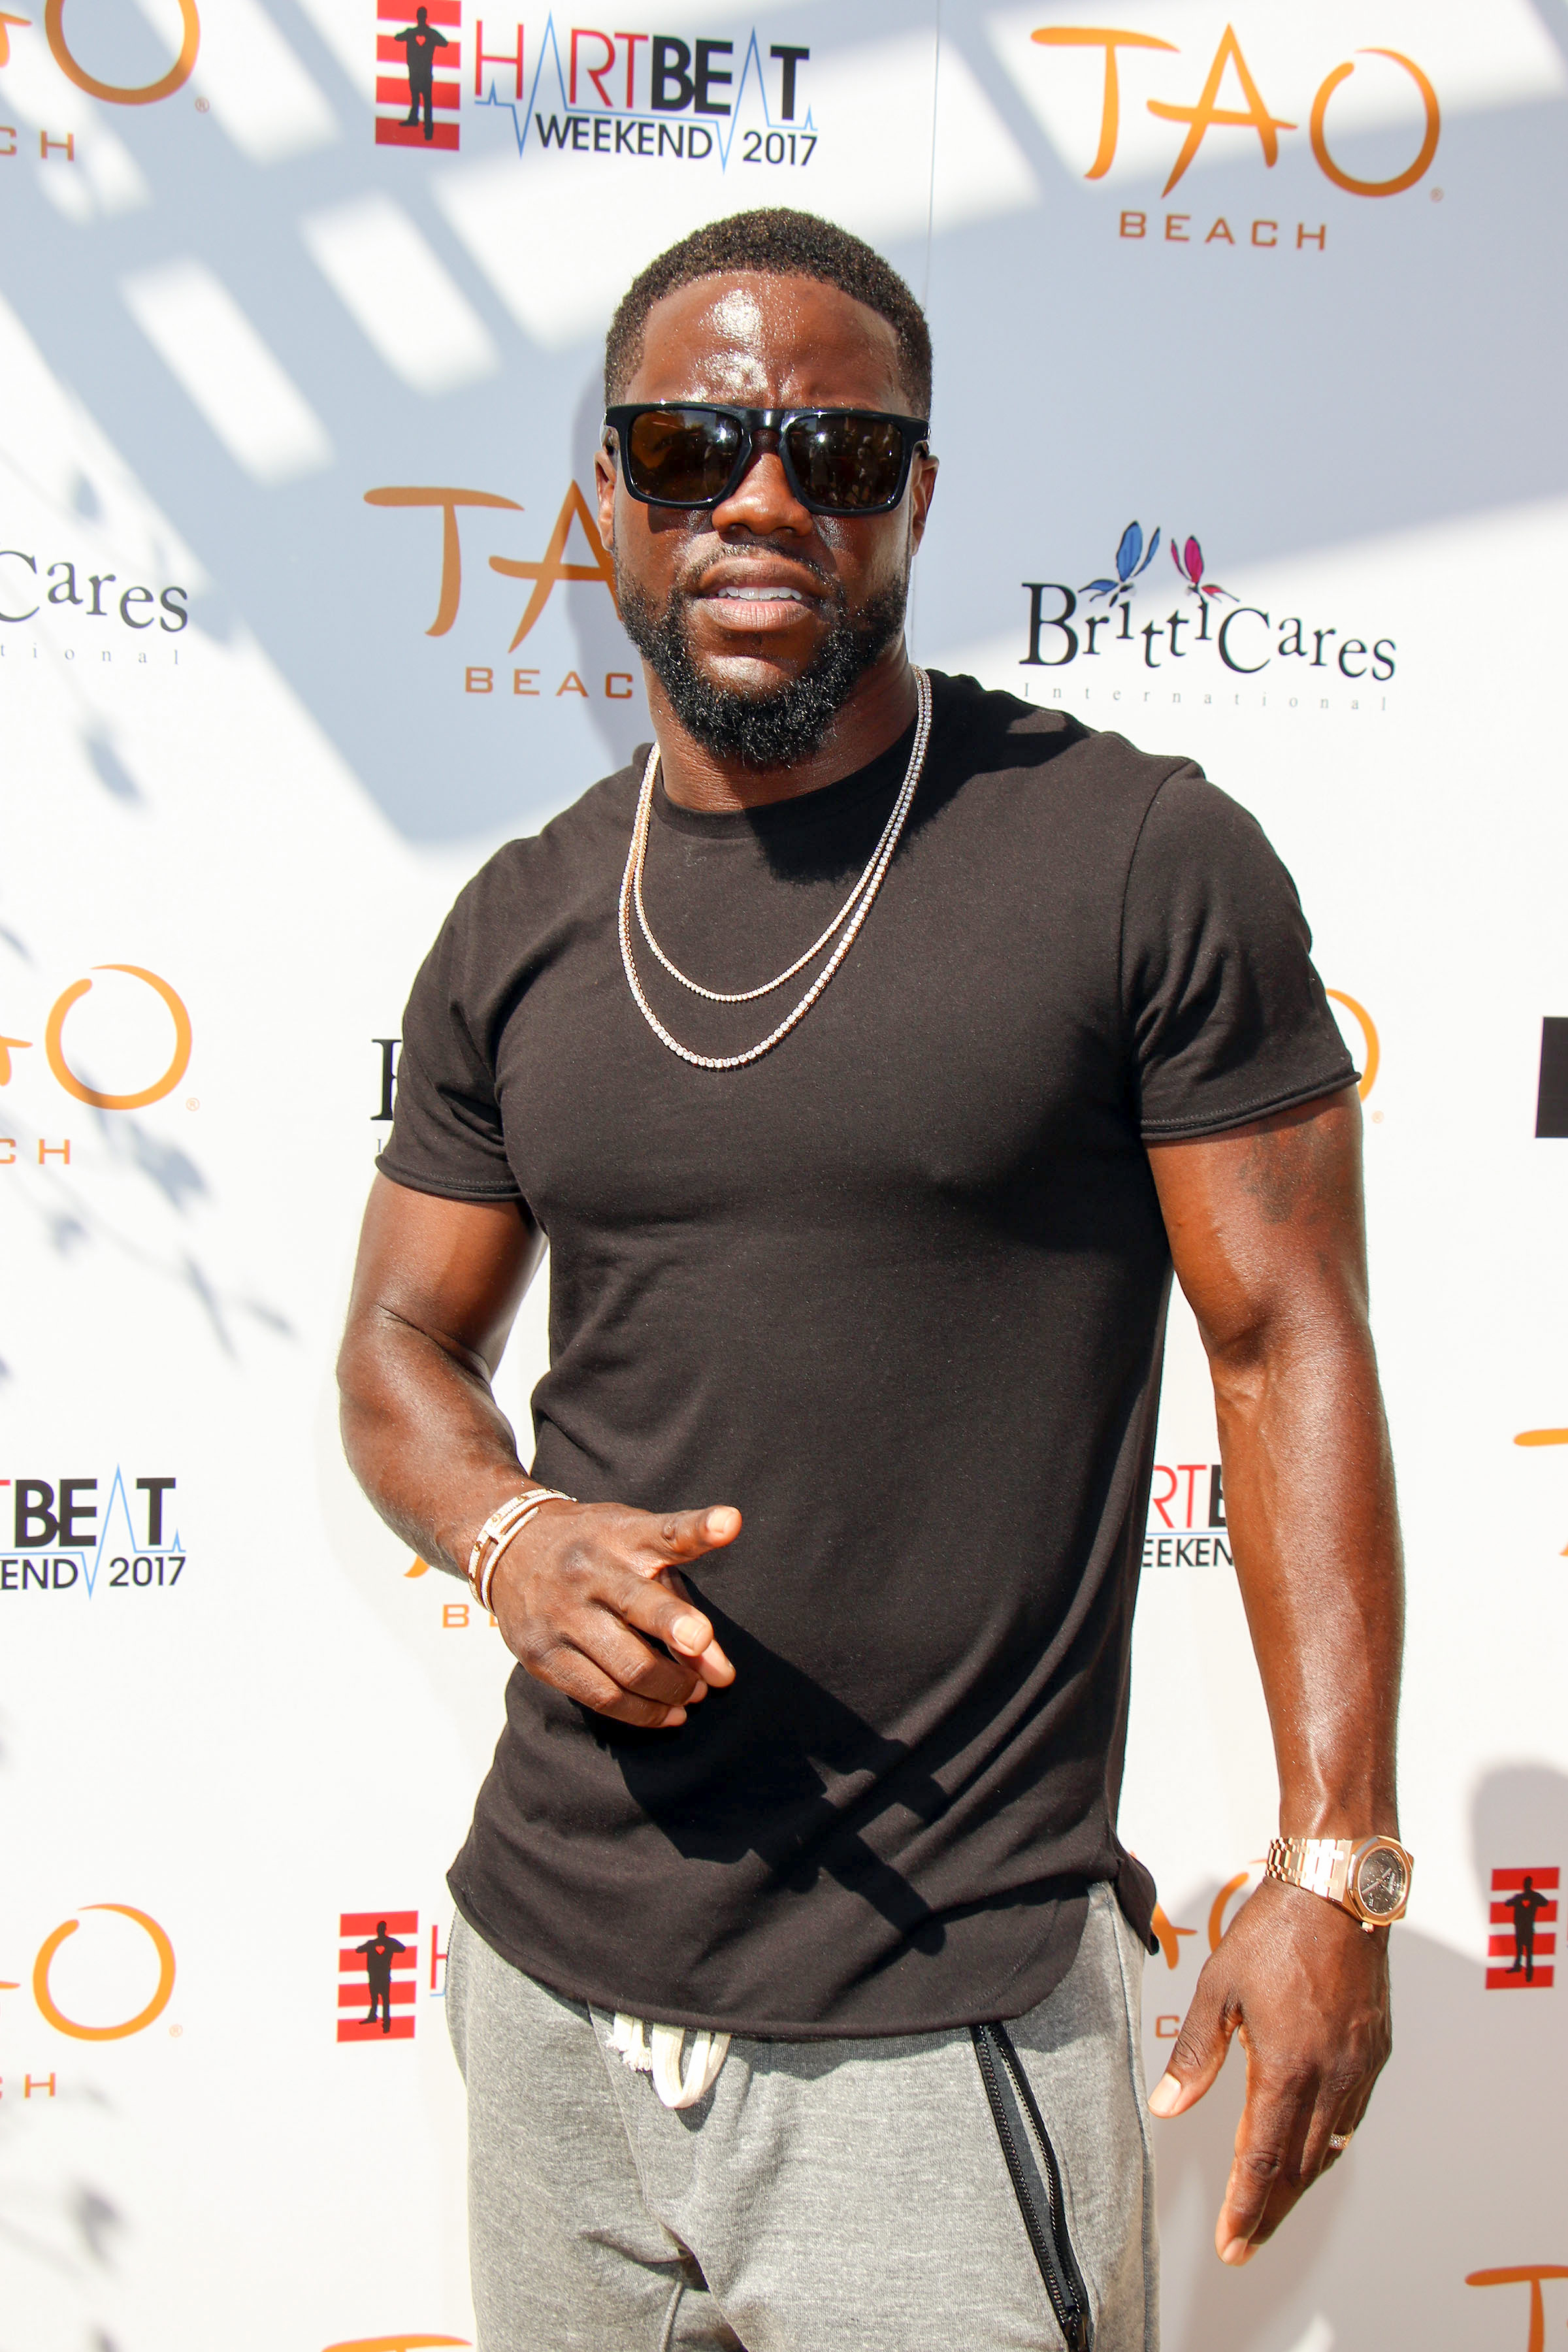 Kevin Hart's Out At The Oscars – But Does Anyone Else Want The Job?